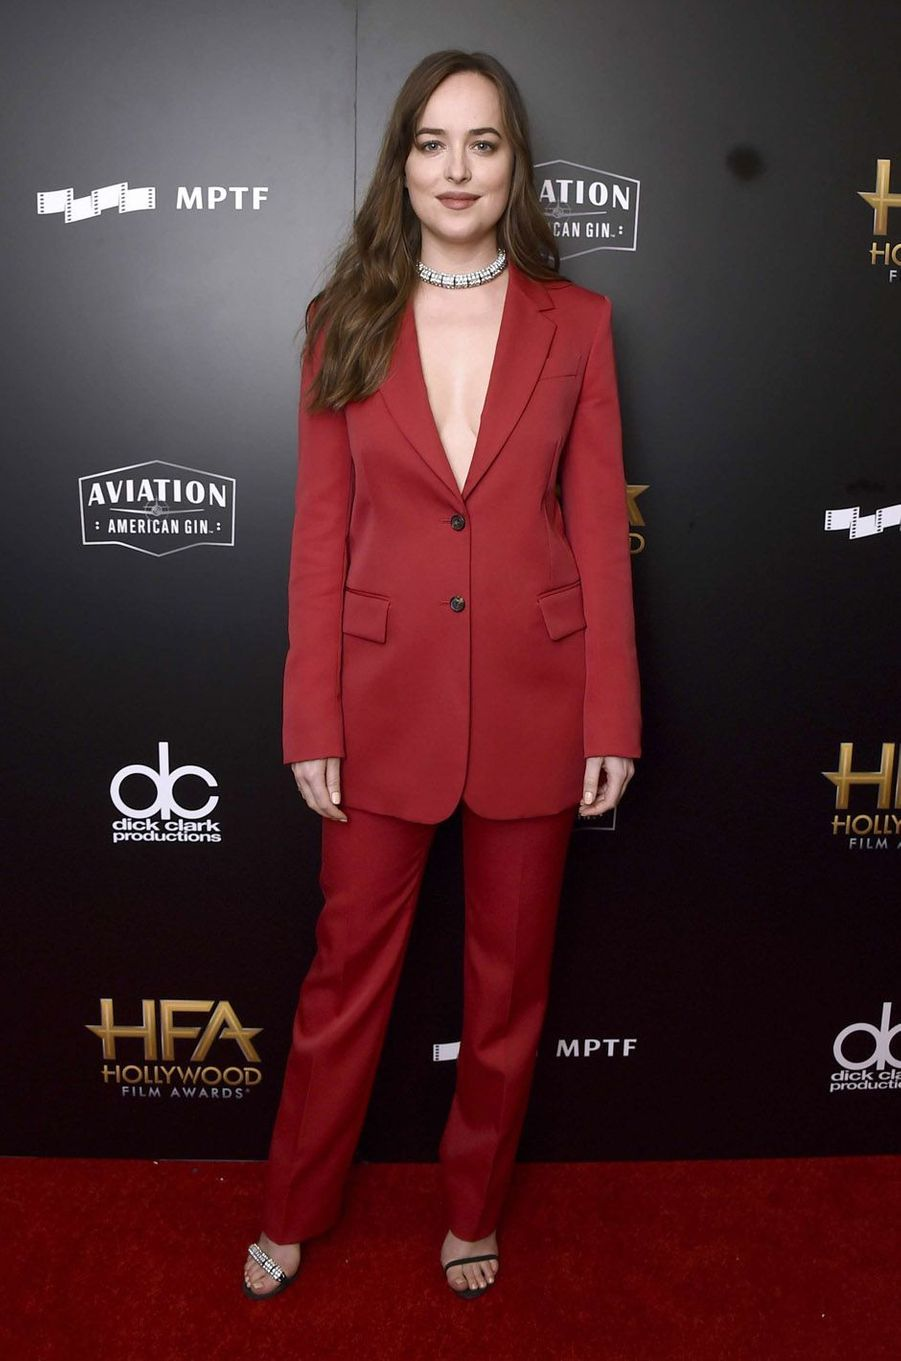 Dakota Johnson à la cérémonie des Hollywood Film Awards à Beverly Hills, le 5 novembre 2017.